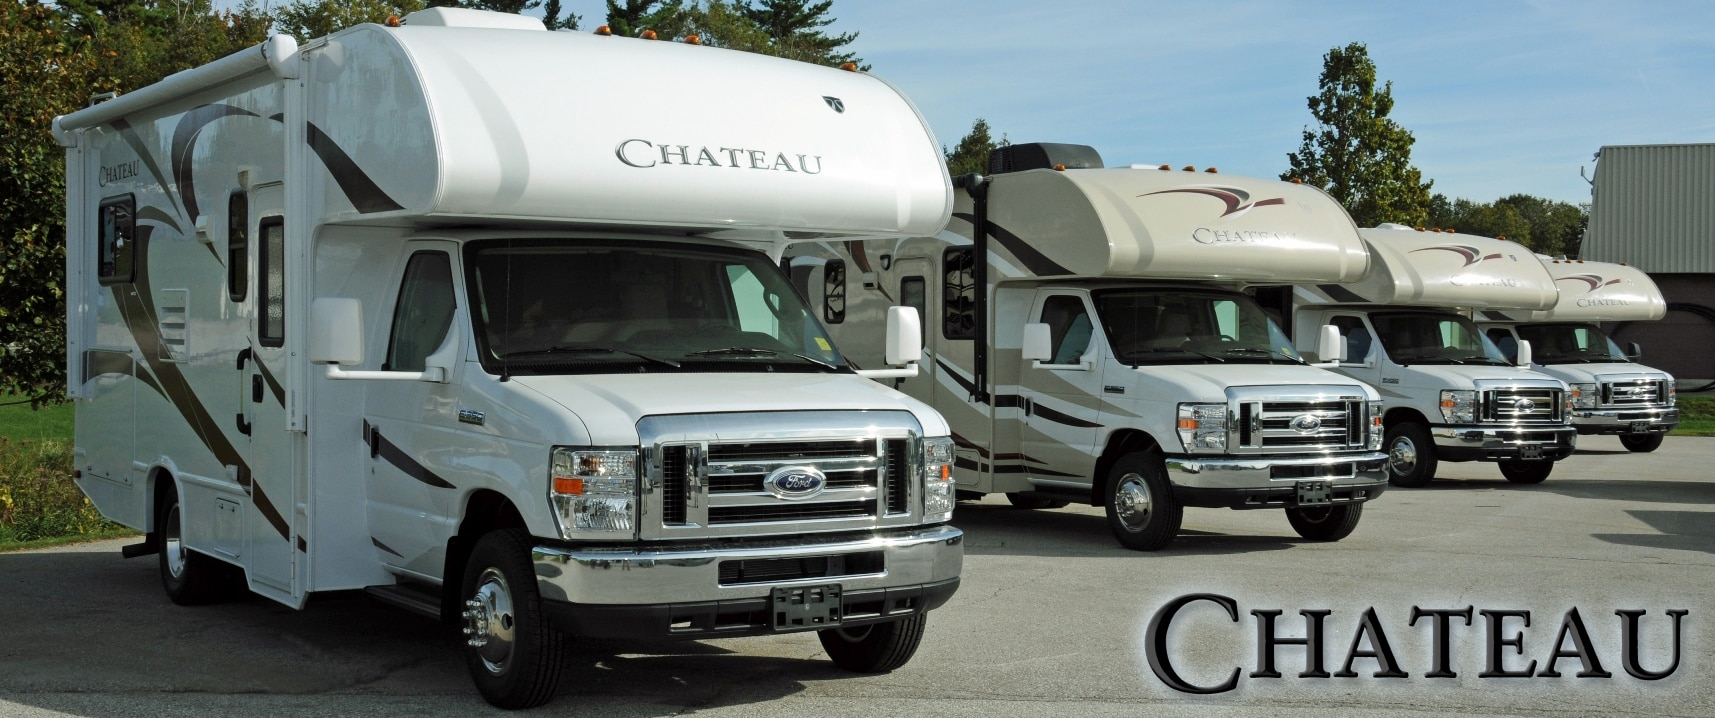 Elegant 30Ft Class C Motorhome For Sale Vehicles From Thunder Bay Ontario